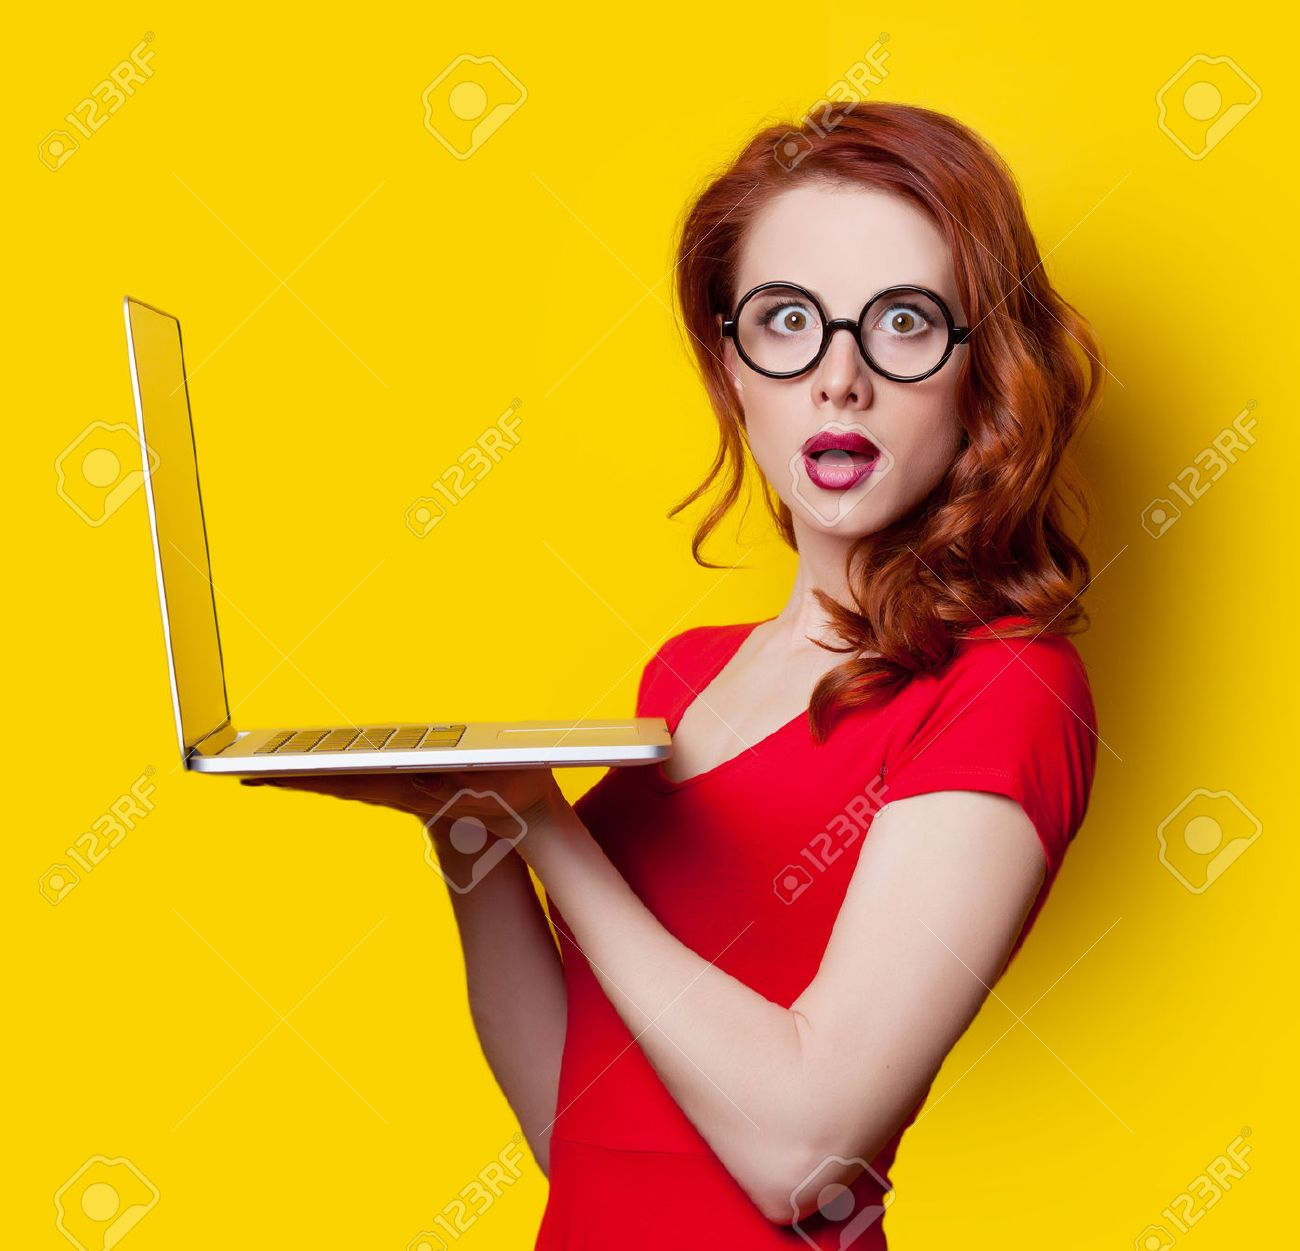 Surprised redhead girl with laptop computer in red dress on yellow background. - 40455024